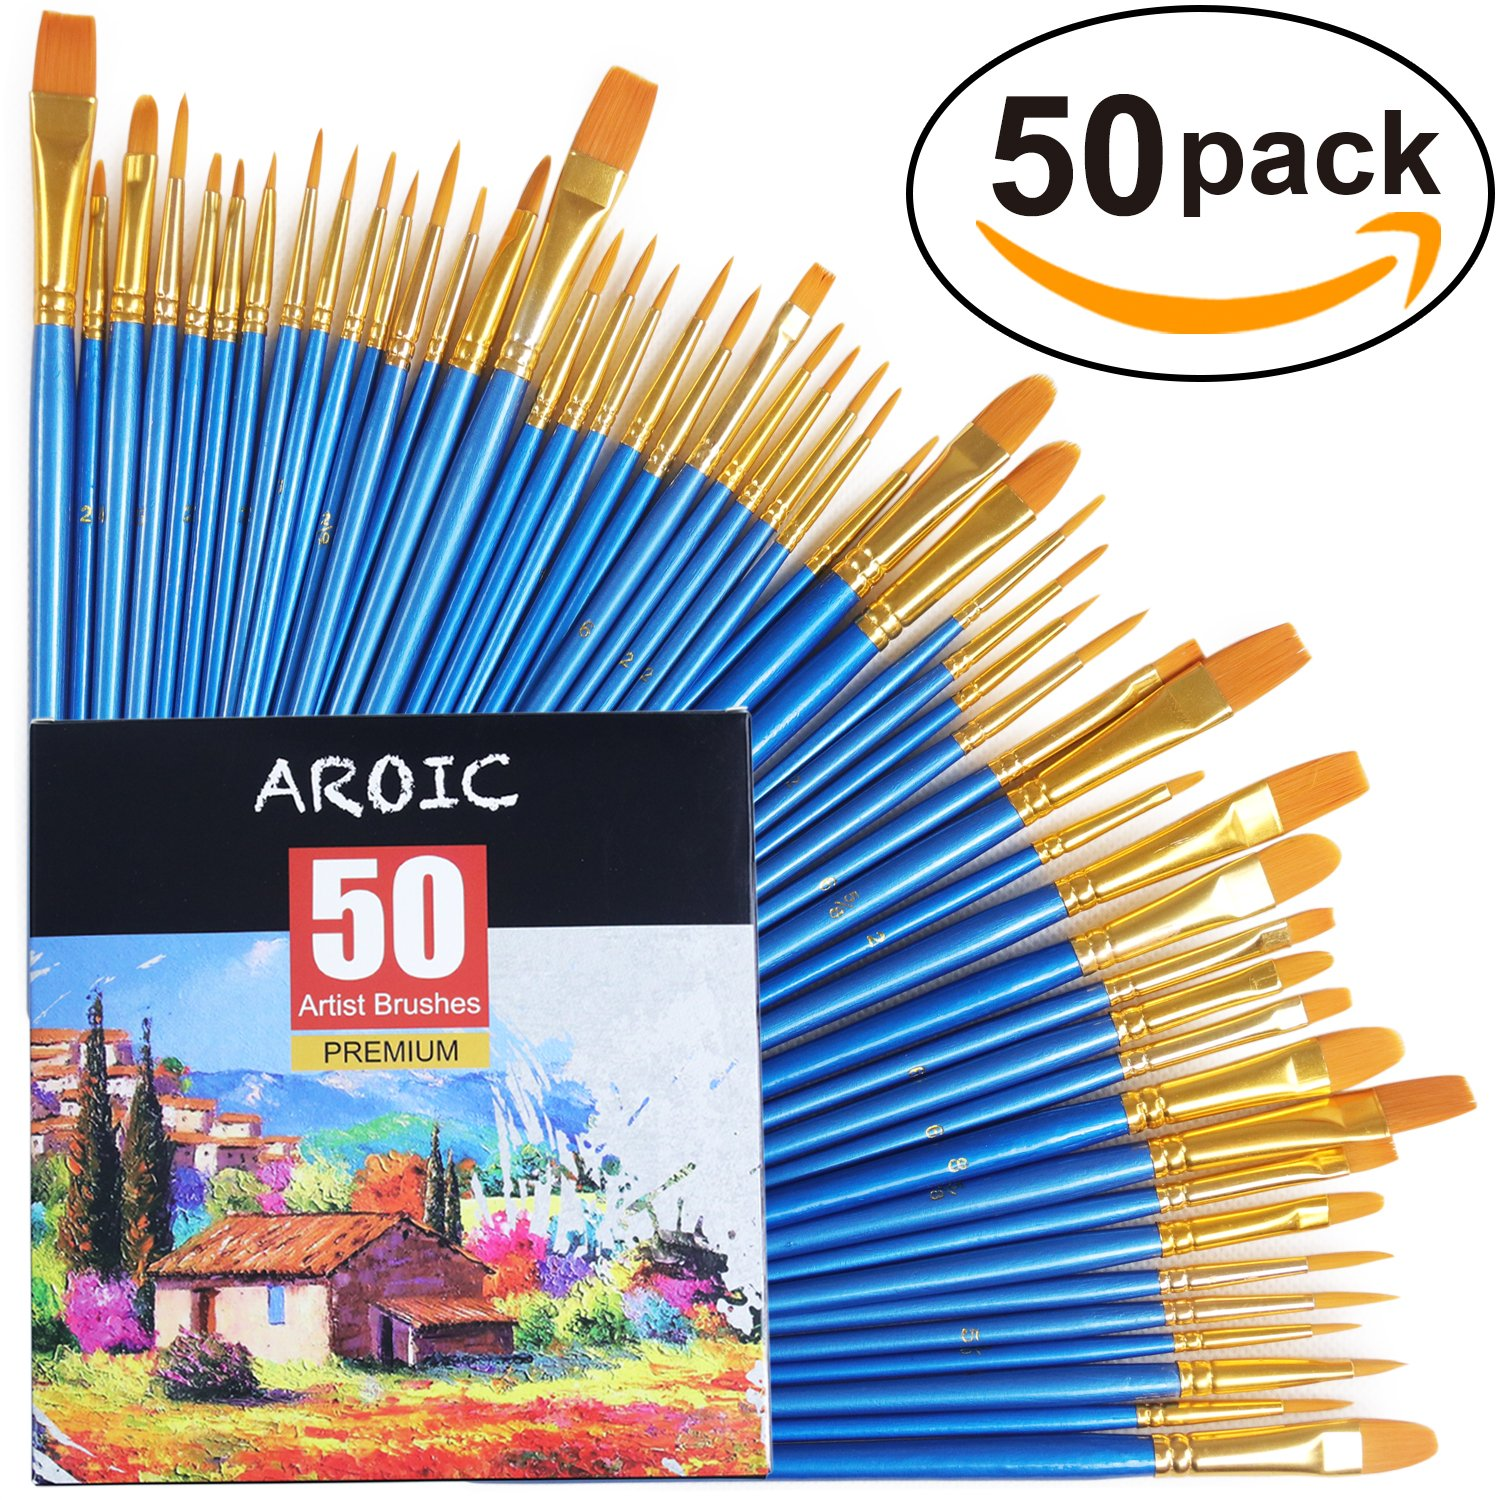 Paint Brush Set, 50 Pcs Nylon Hair Brushes For Acrylic Oil Watercolor Painting Artist Professional Painting Kits by Aroic